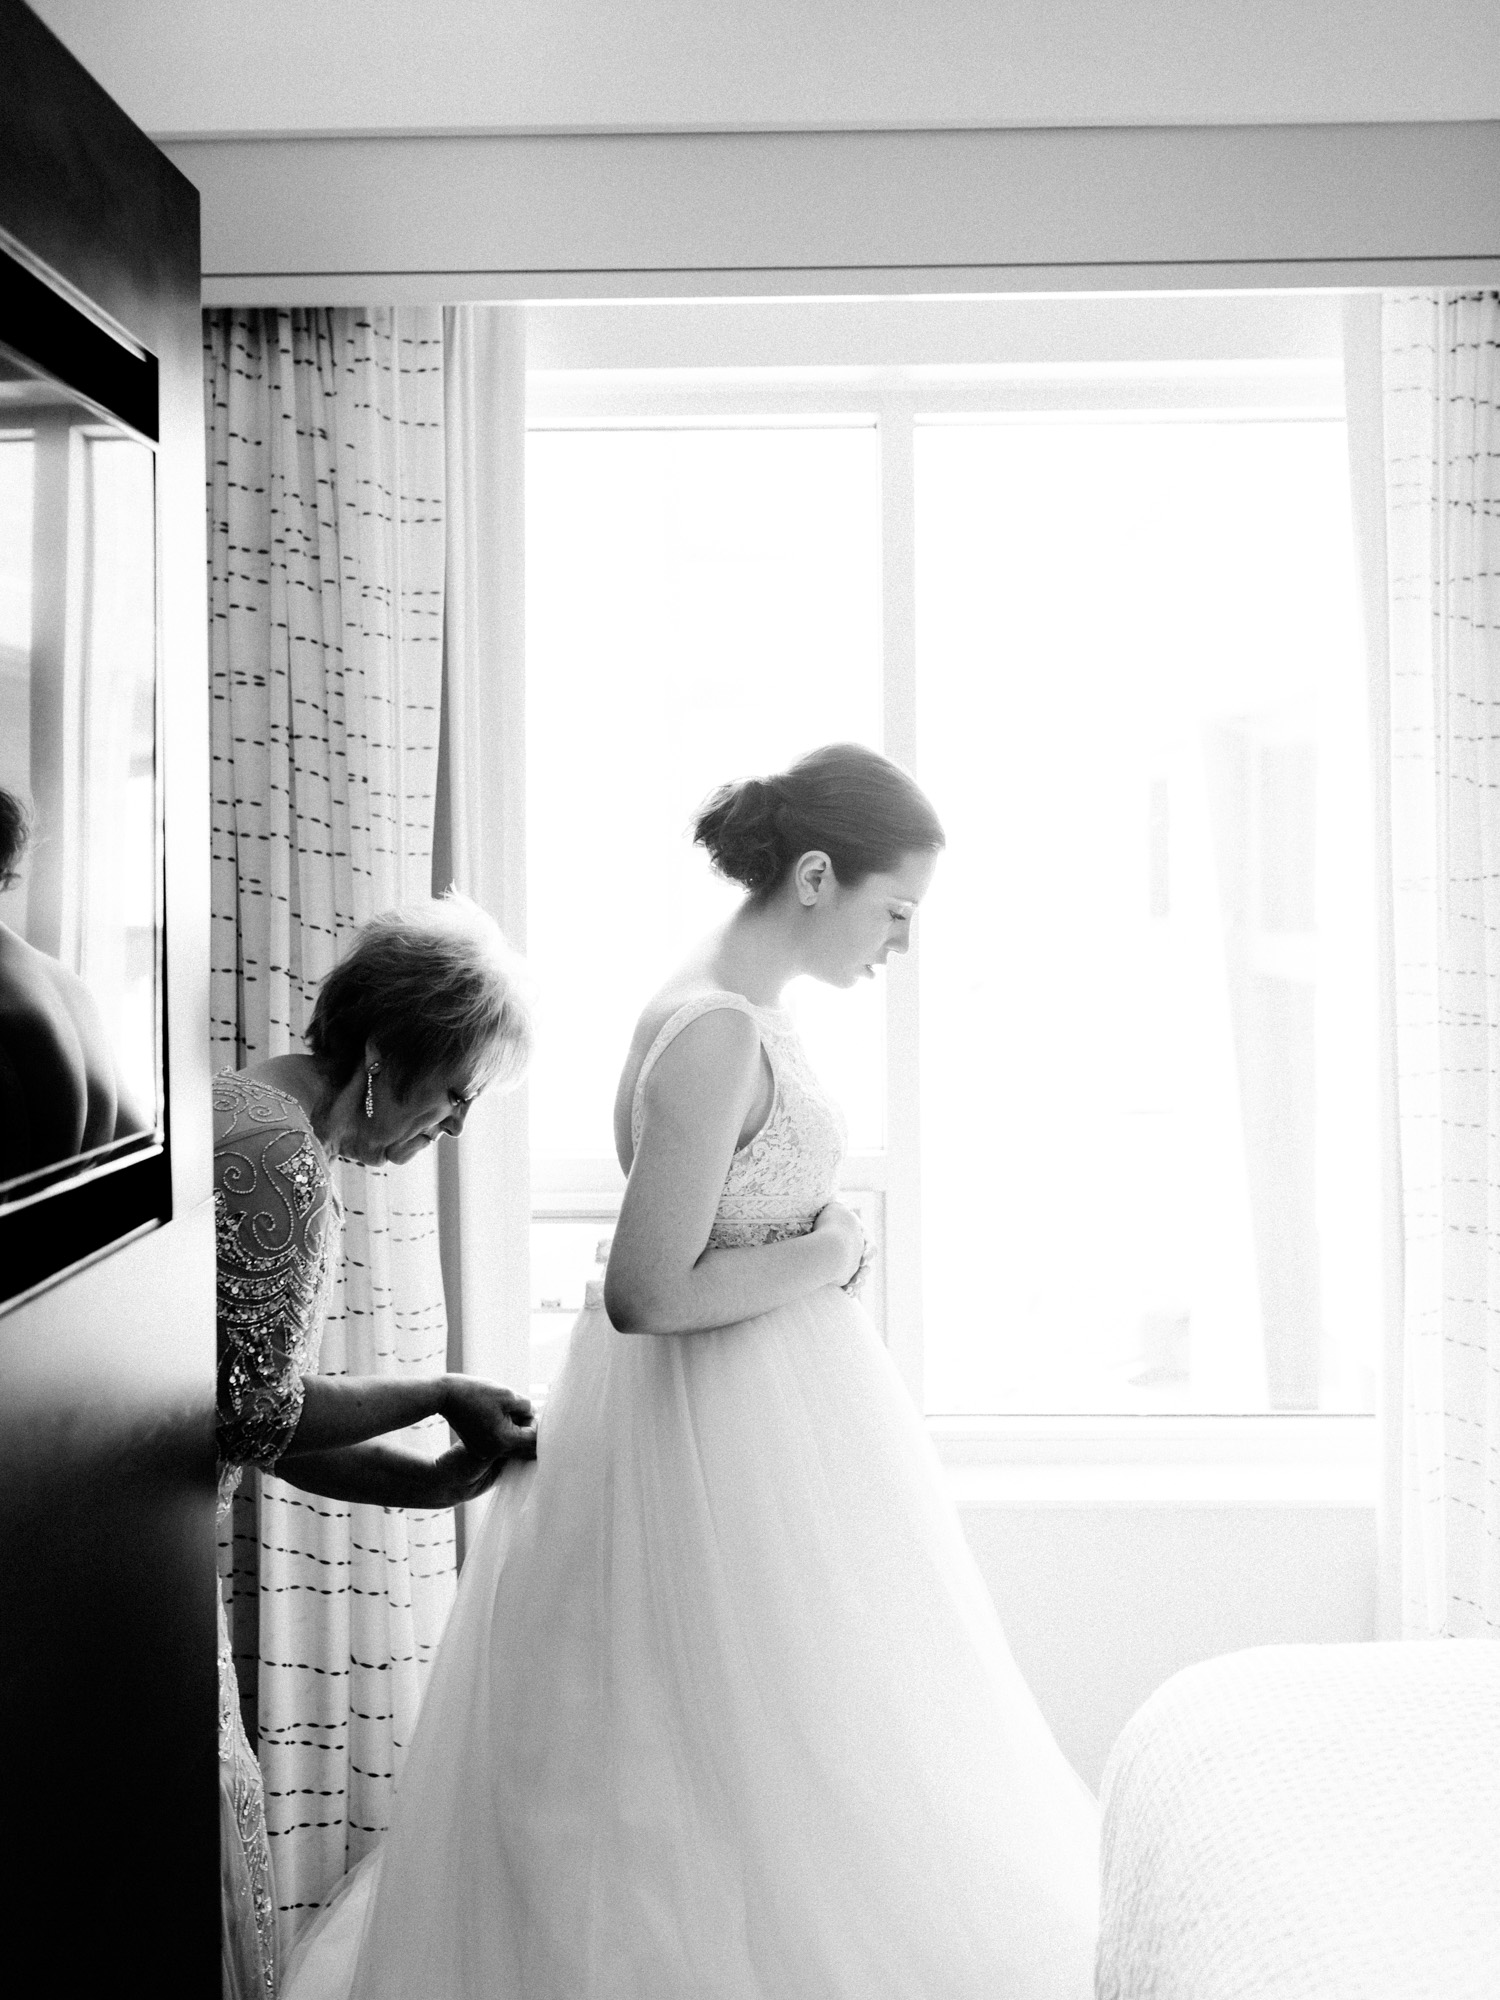 A bride stands in window light at an Ann Arbor hotel as her mother fastens the back of her dress